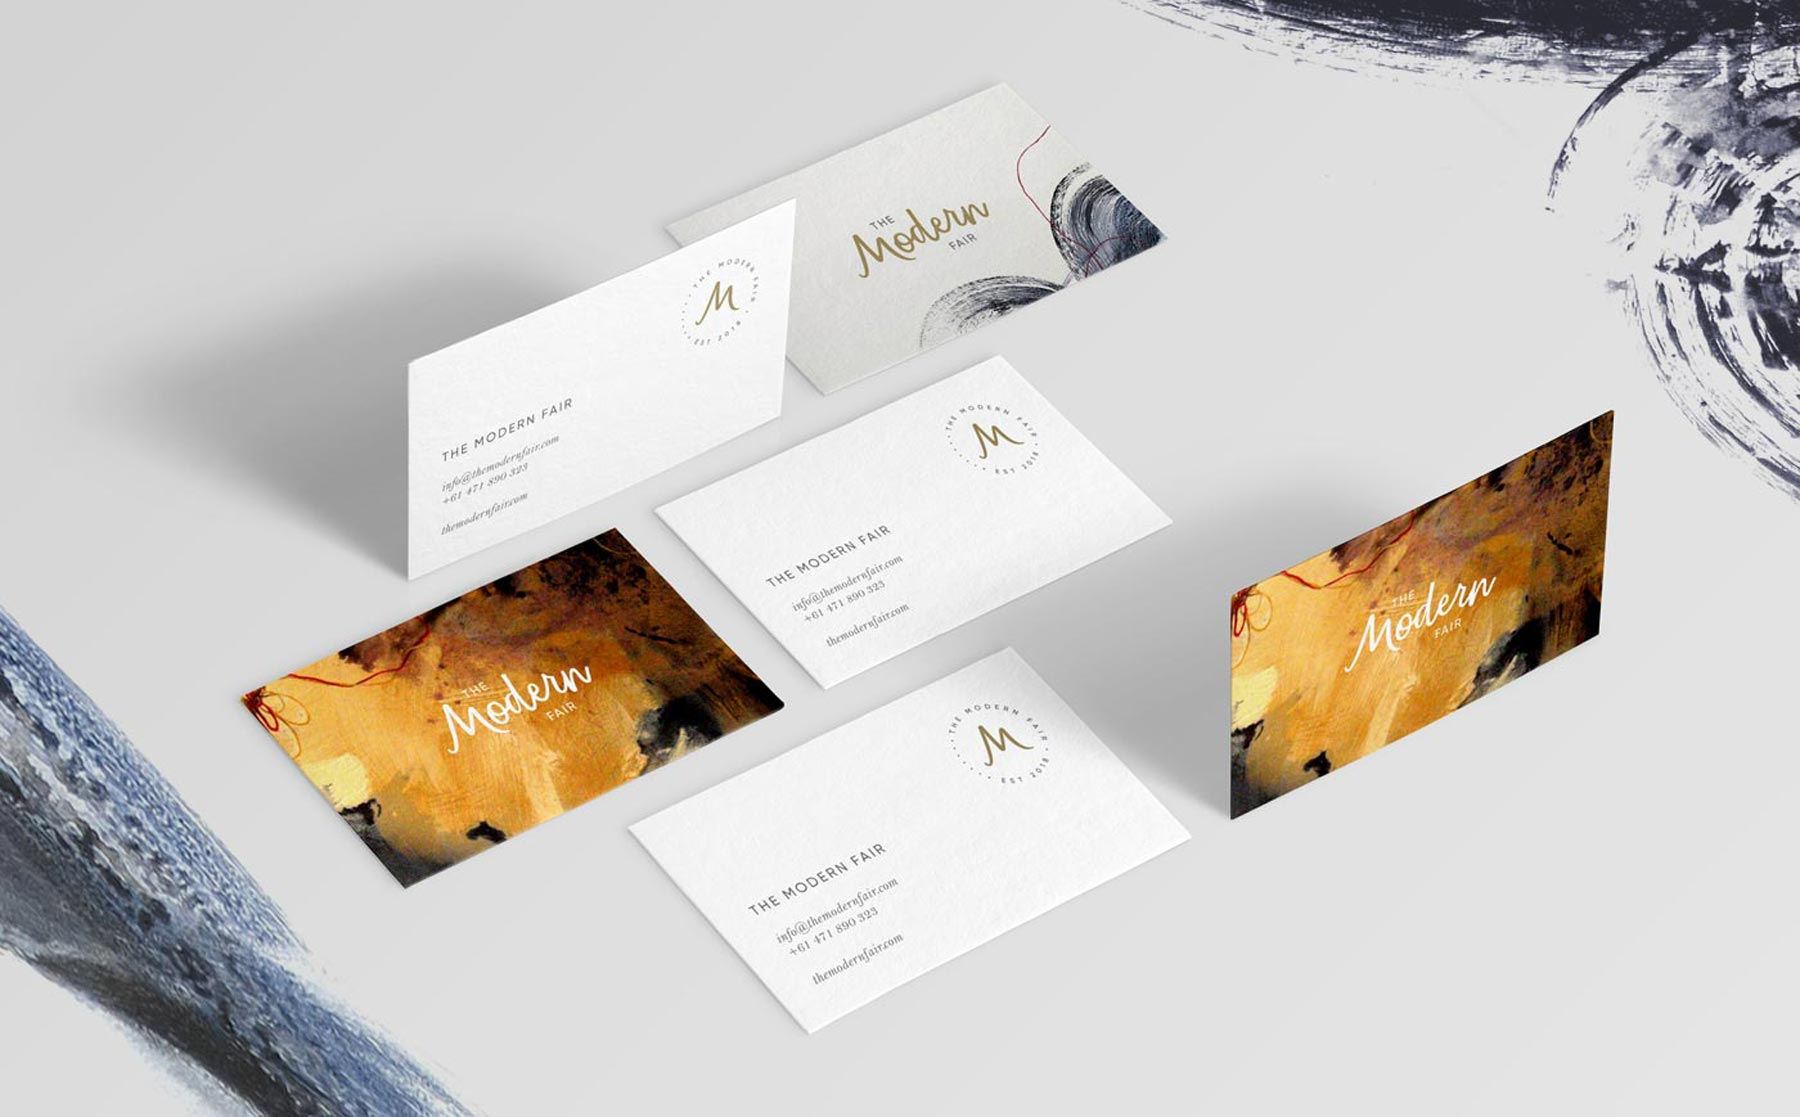 The Modern Fair business cards, design by Lisa Furze